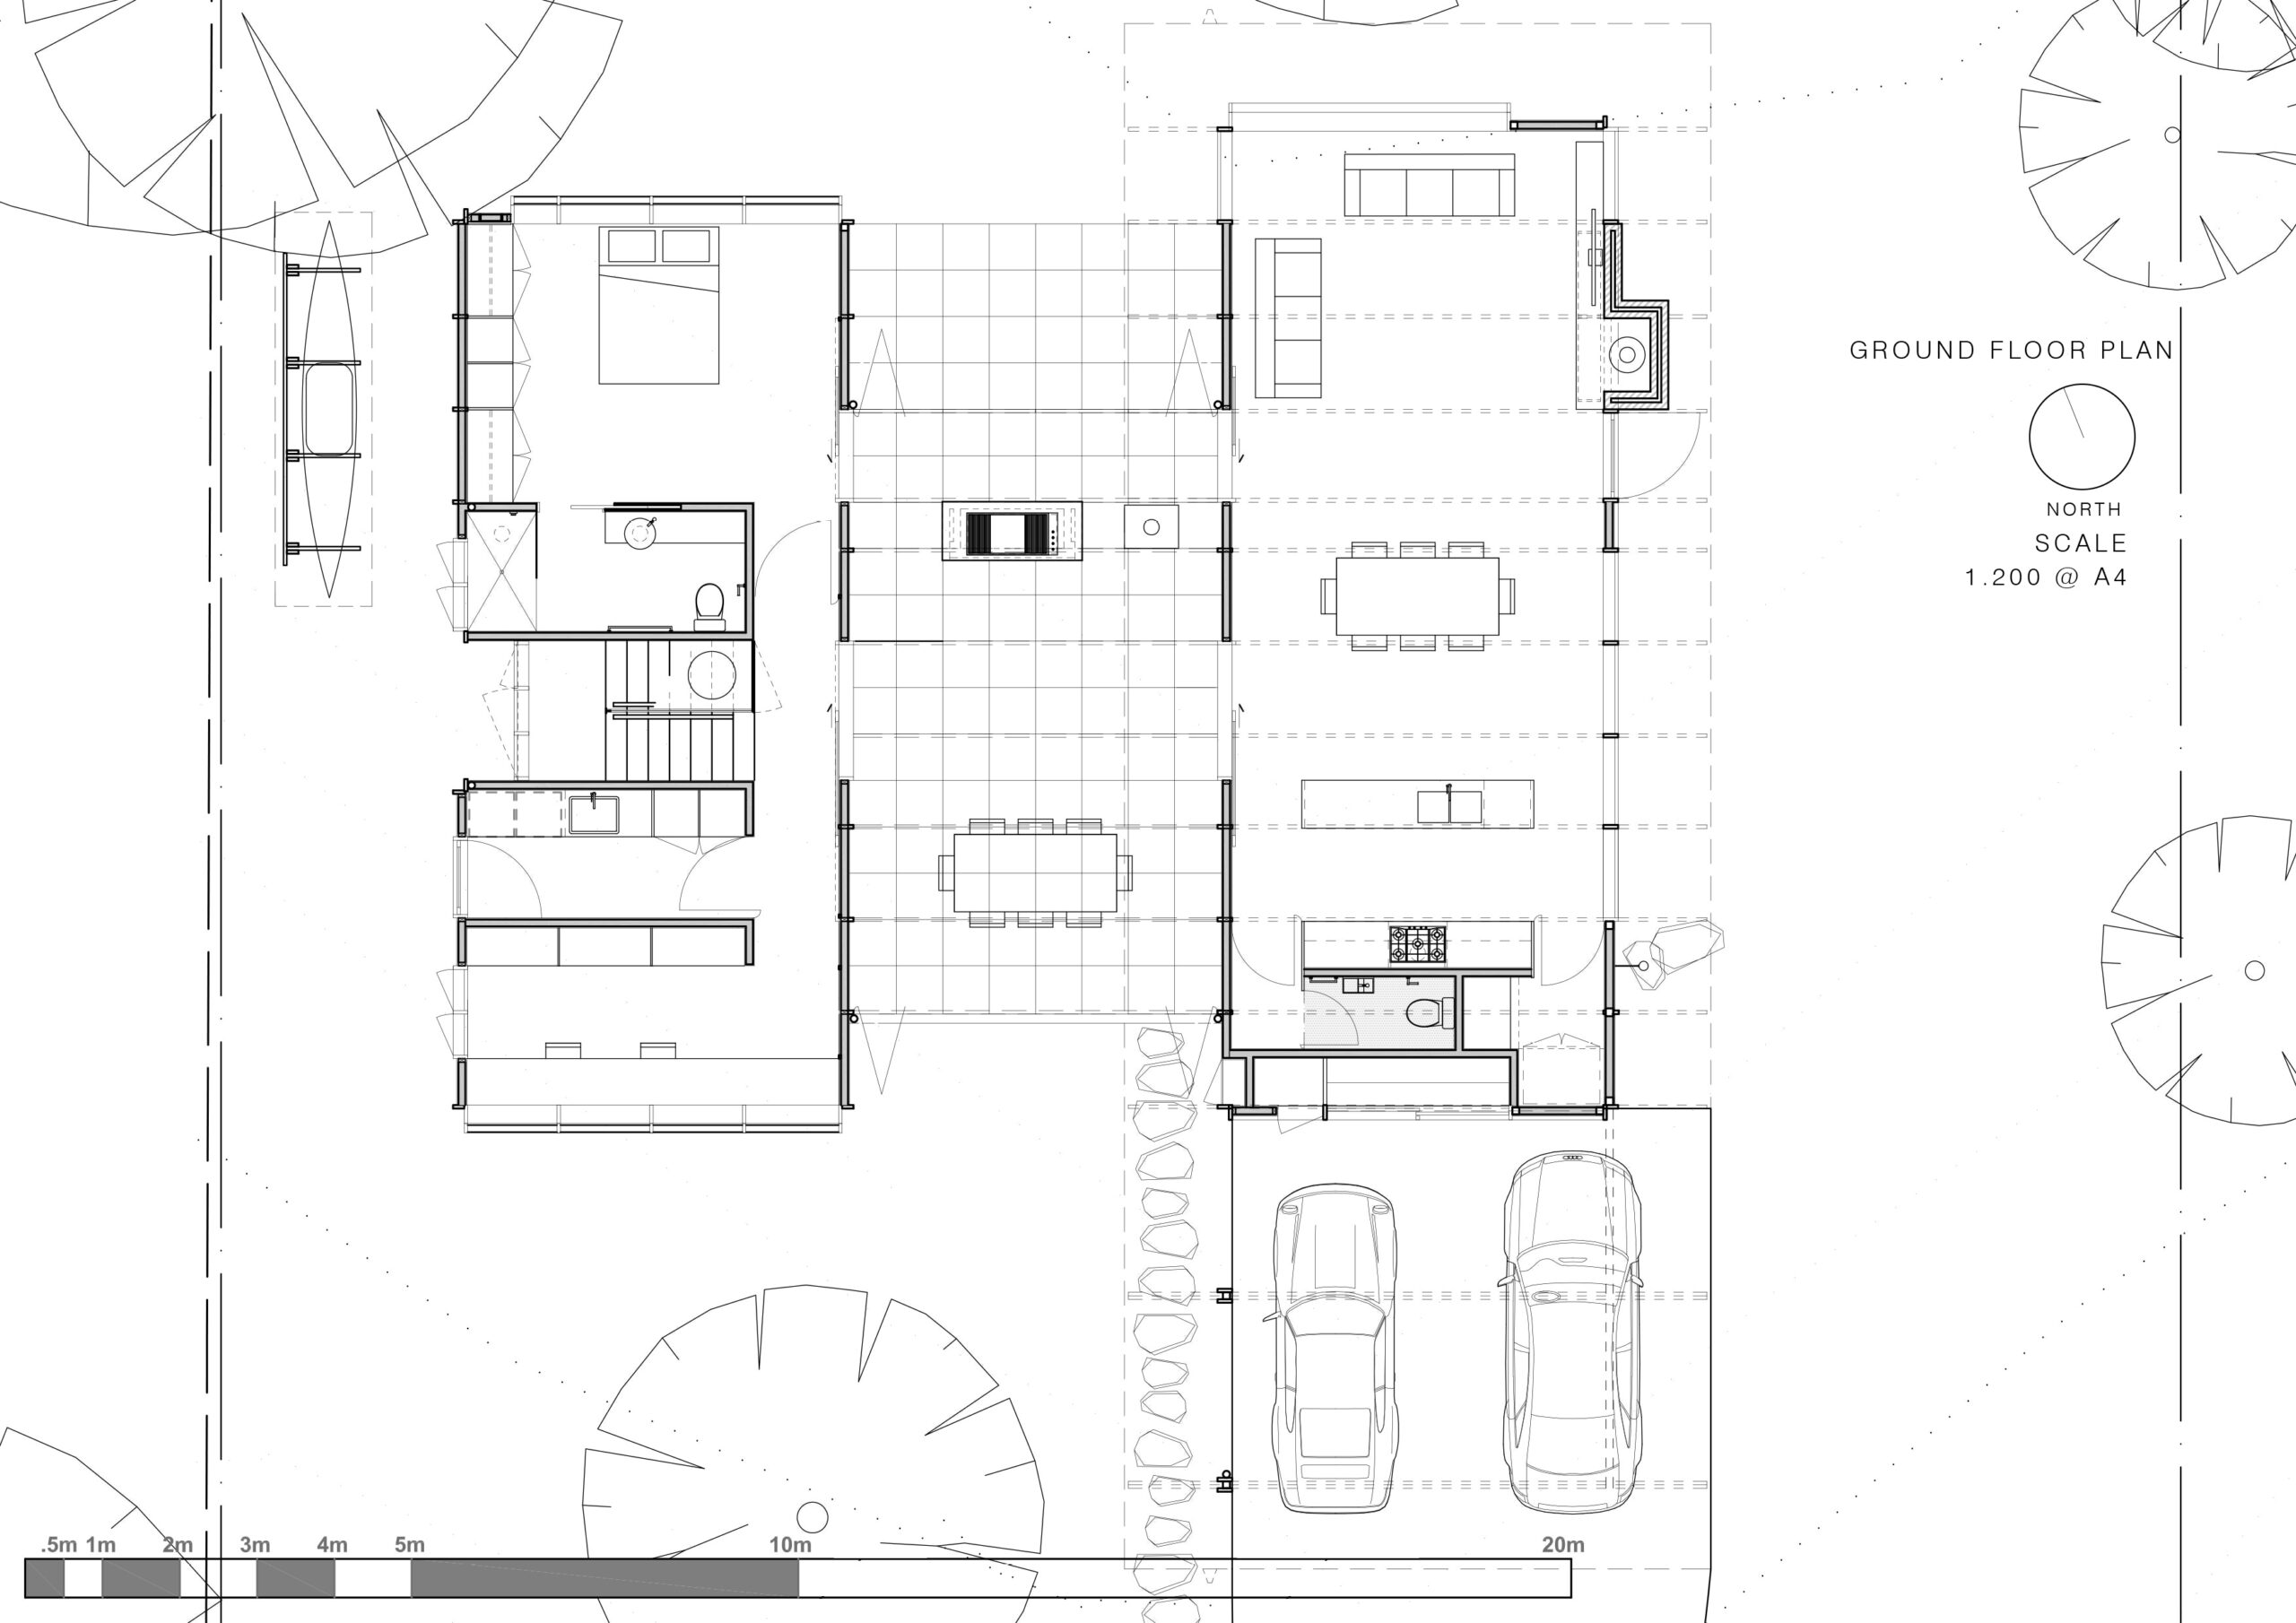 907-resnew_CourtHouse_PeterWinklerArchitects_GroundFloorPlan_A4_1